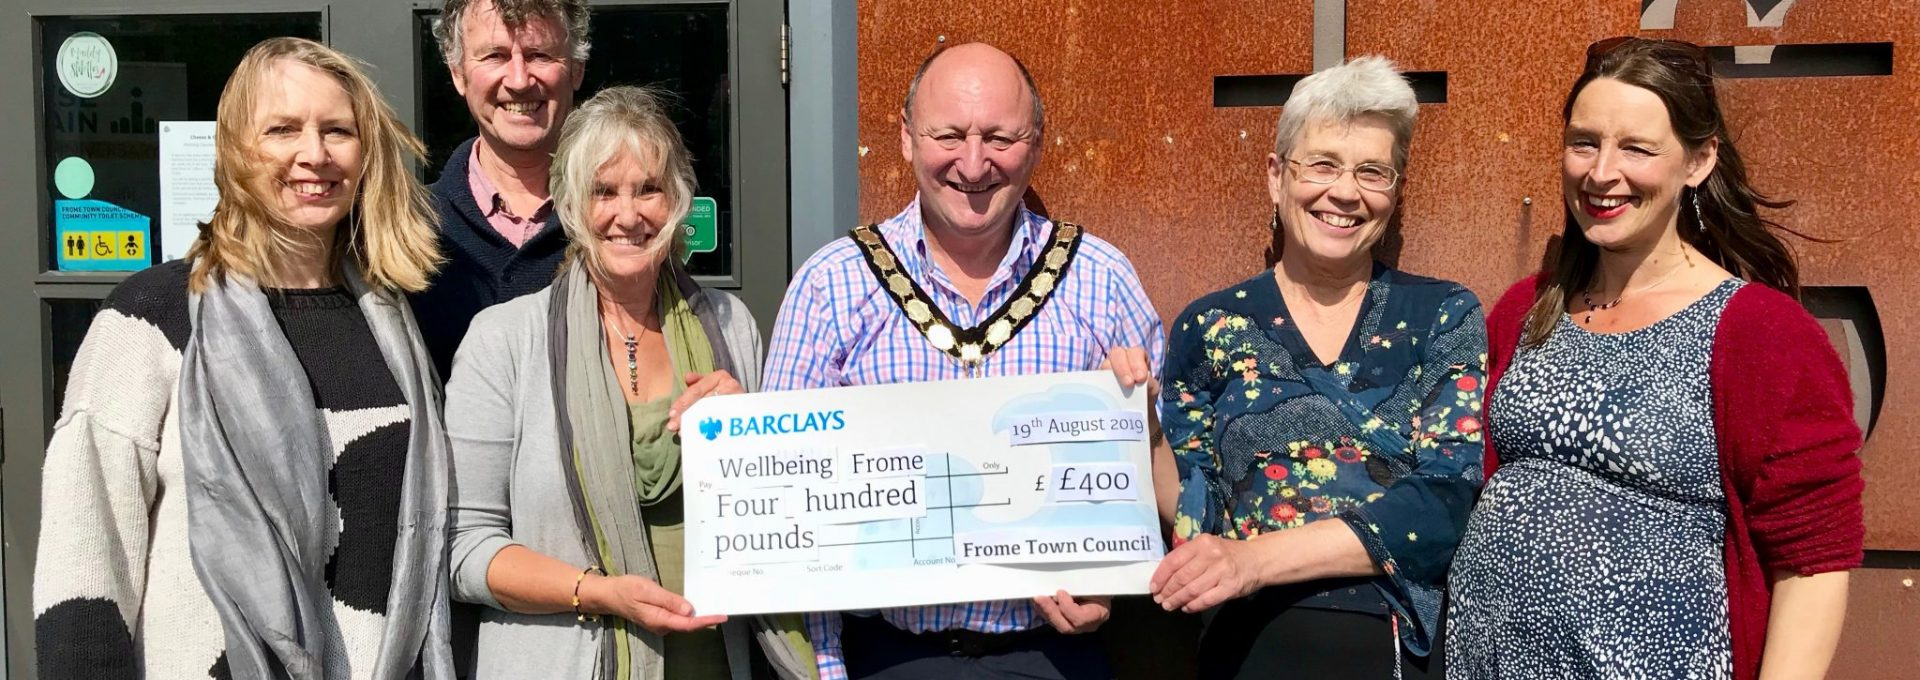 Wellbeing Frome Grant cheque presentation